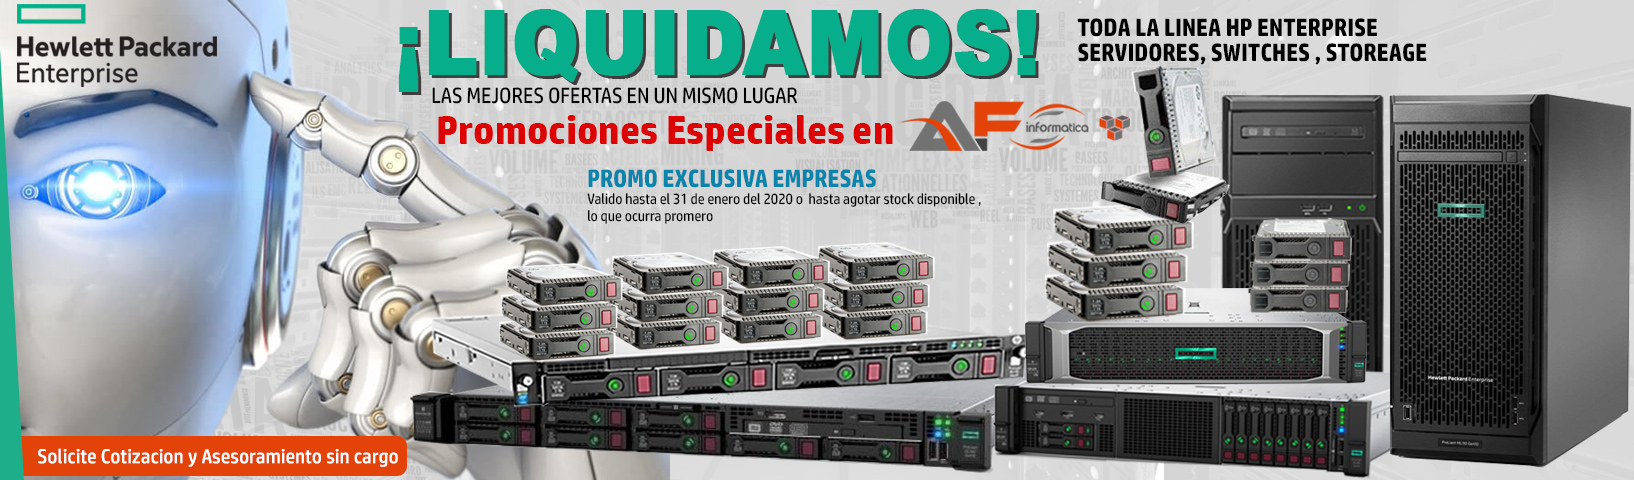 liquidacion-hp-enterprise.jpg